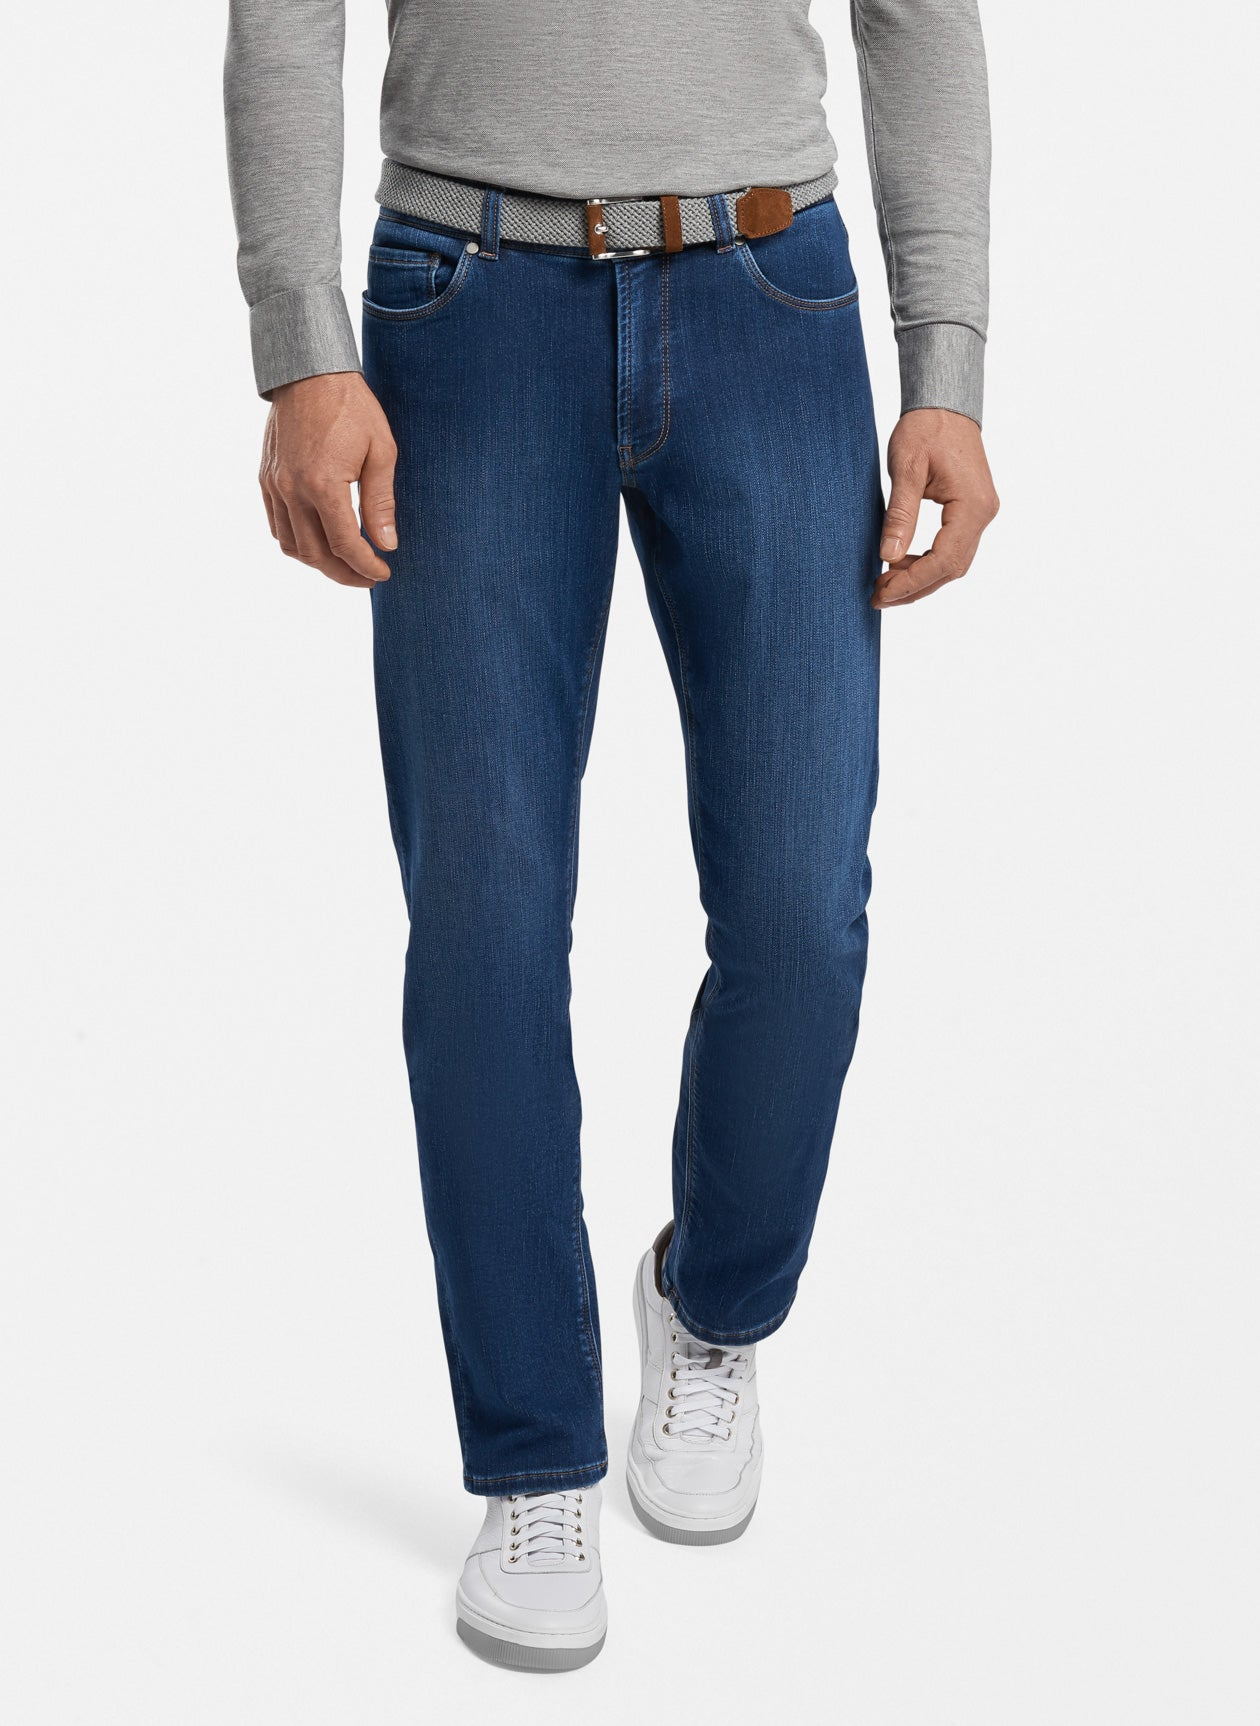 WAYFARE DENIM FIVE-POCKET PANT